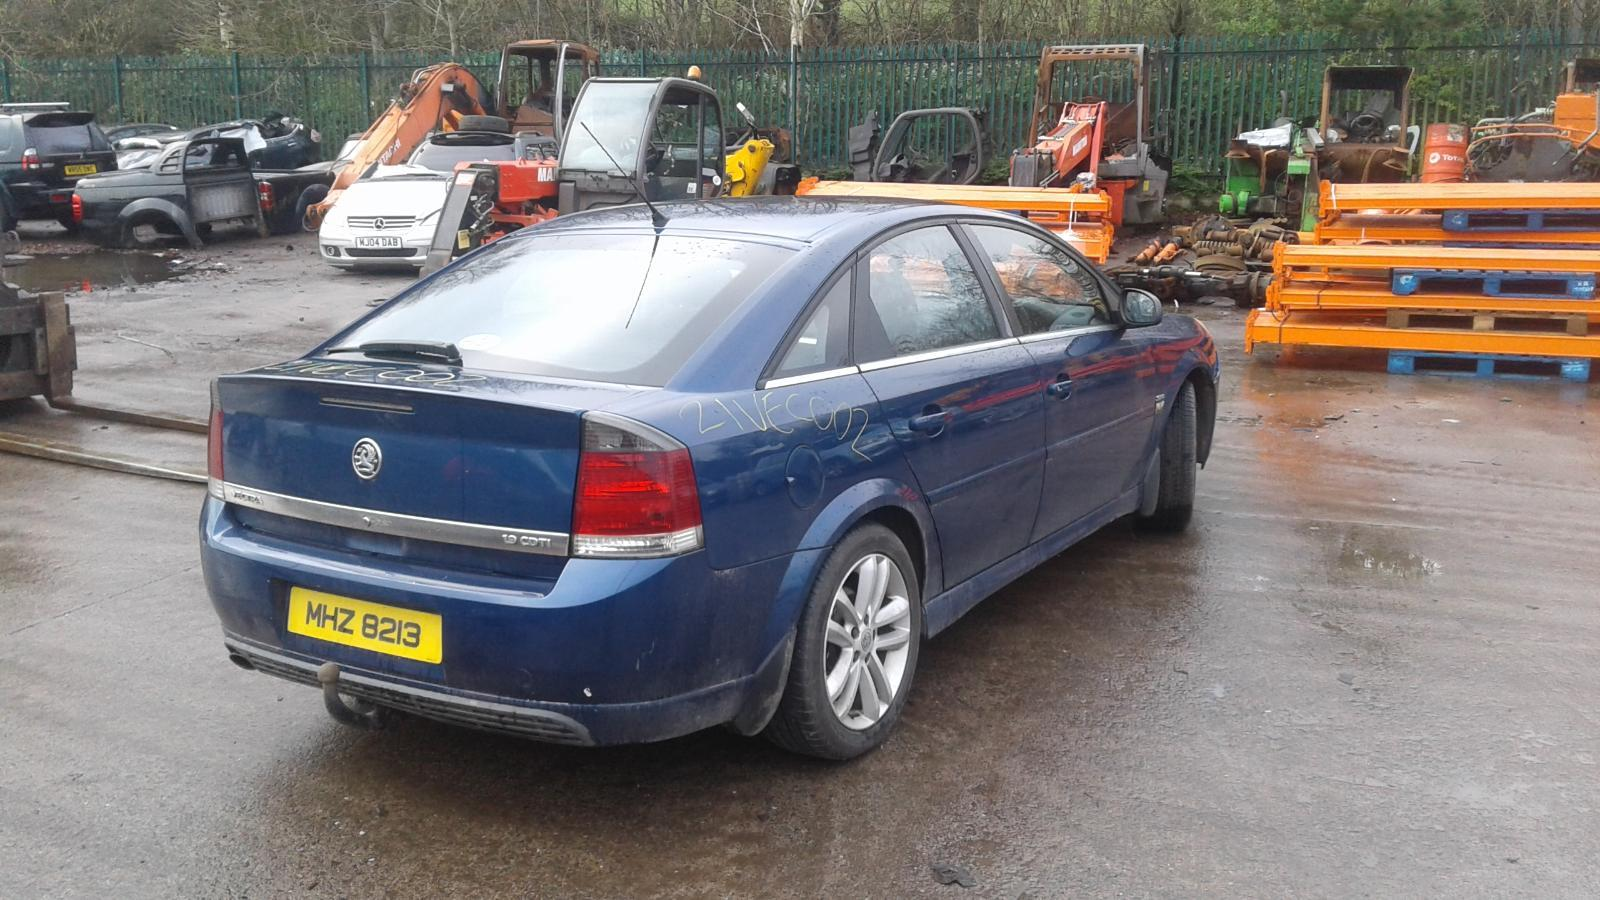 2006 OPEL VECTRA Image